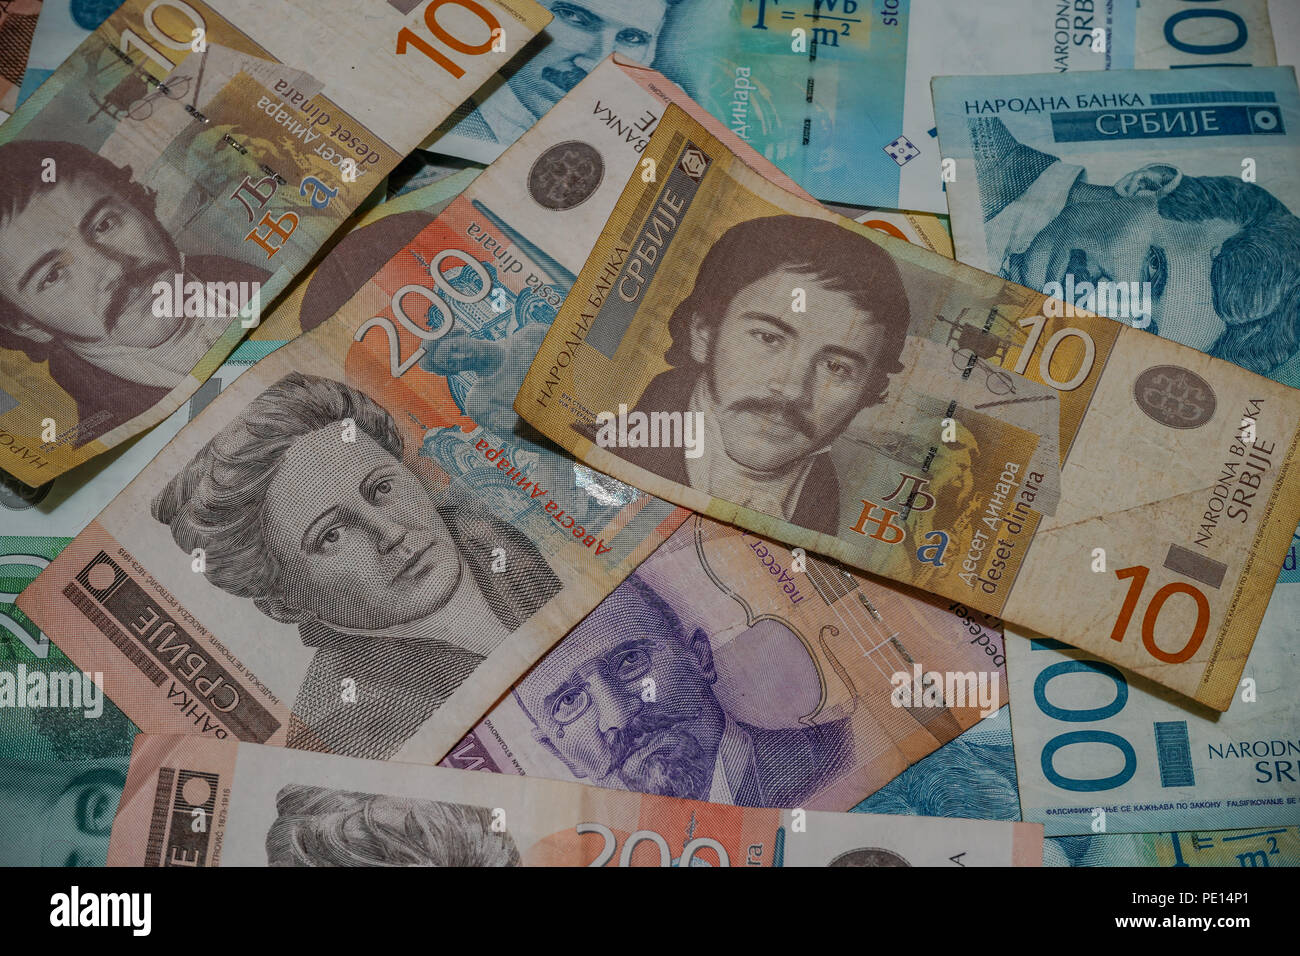 Money is any item or verifiable record that is generally accepted as payment for goods and services and repayment of debts in a particular country or  - Stock Image